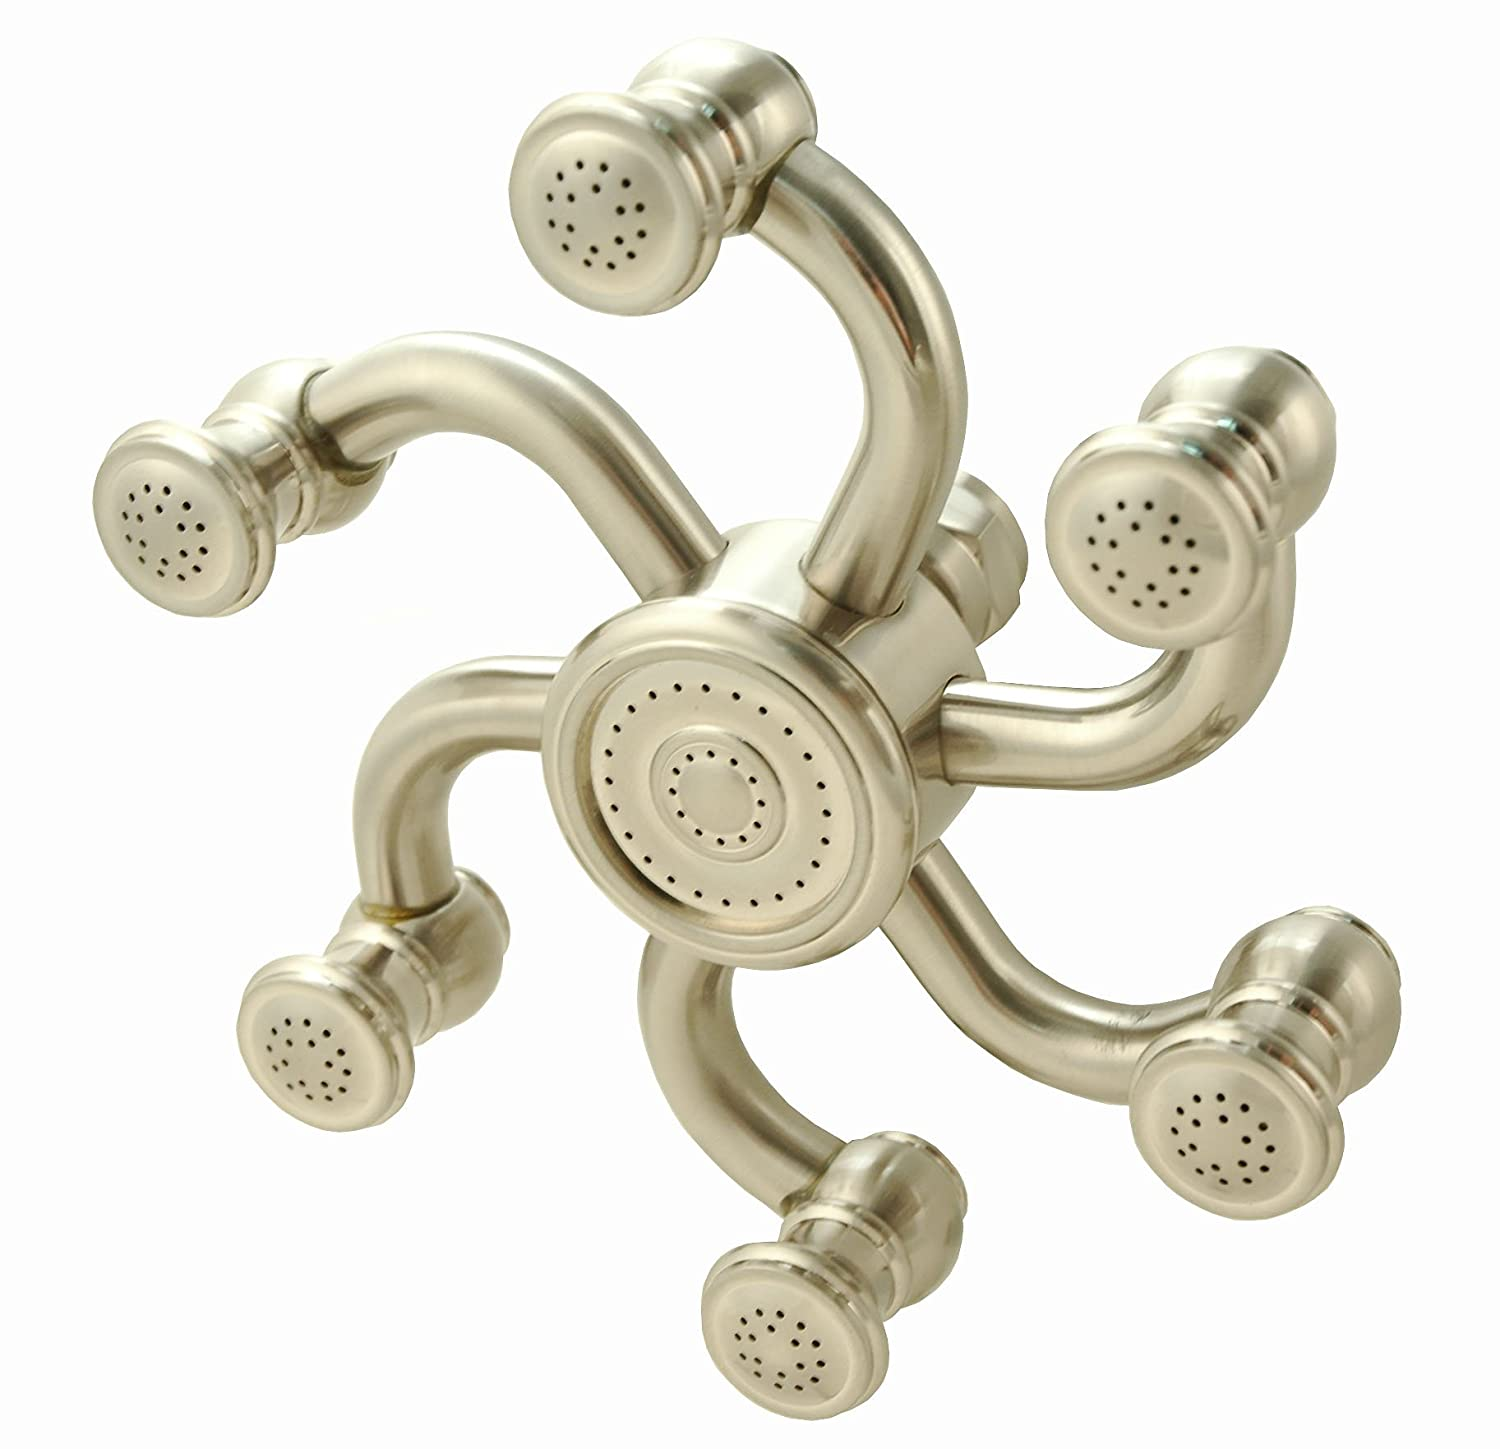 Octopus Shower Head - Brushed Nickel Finish - Fixed Showerheads ...